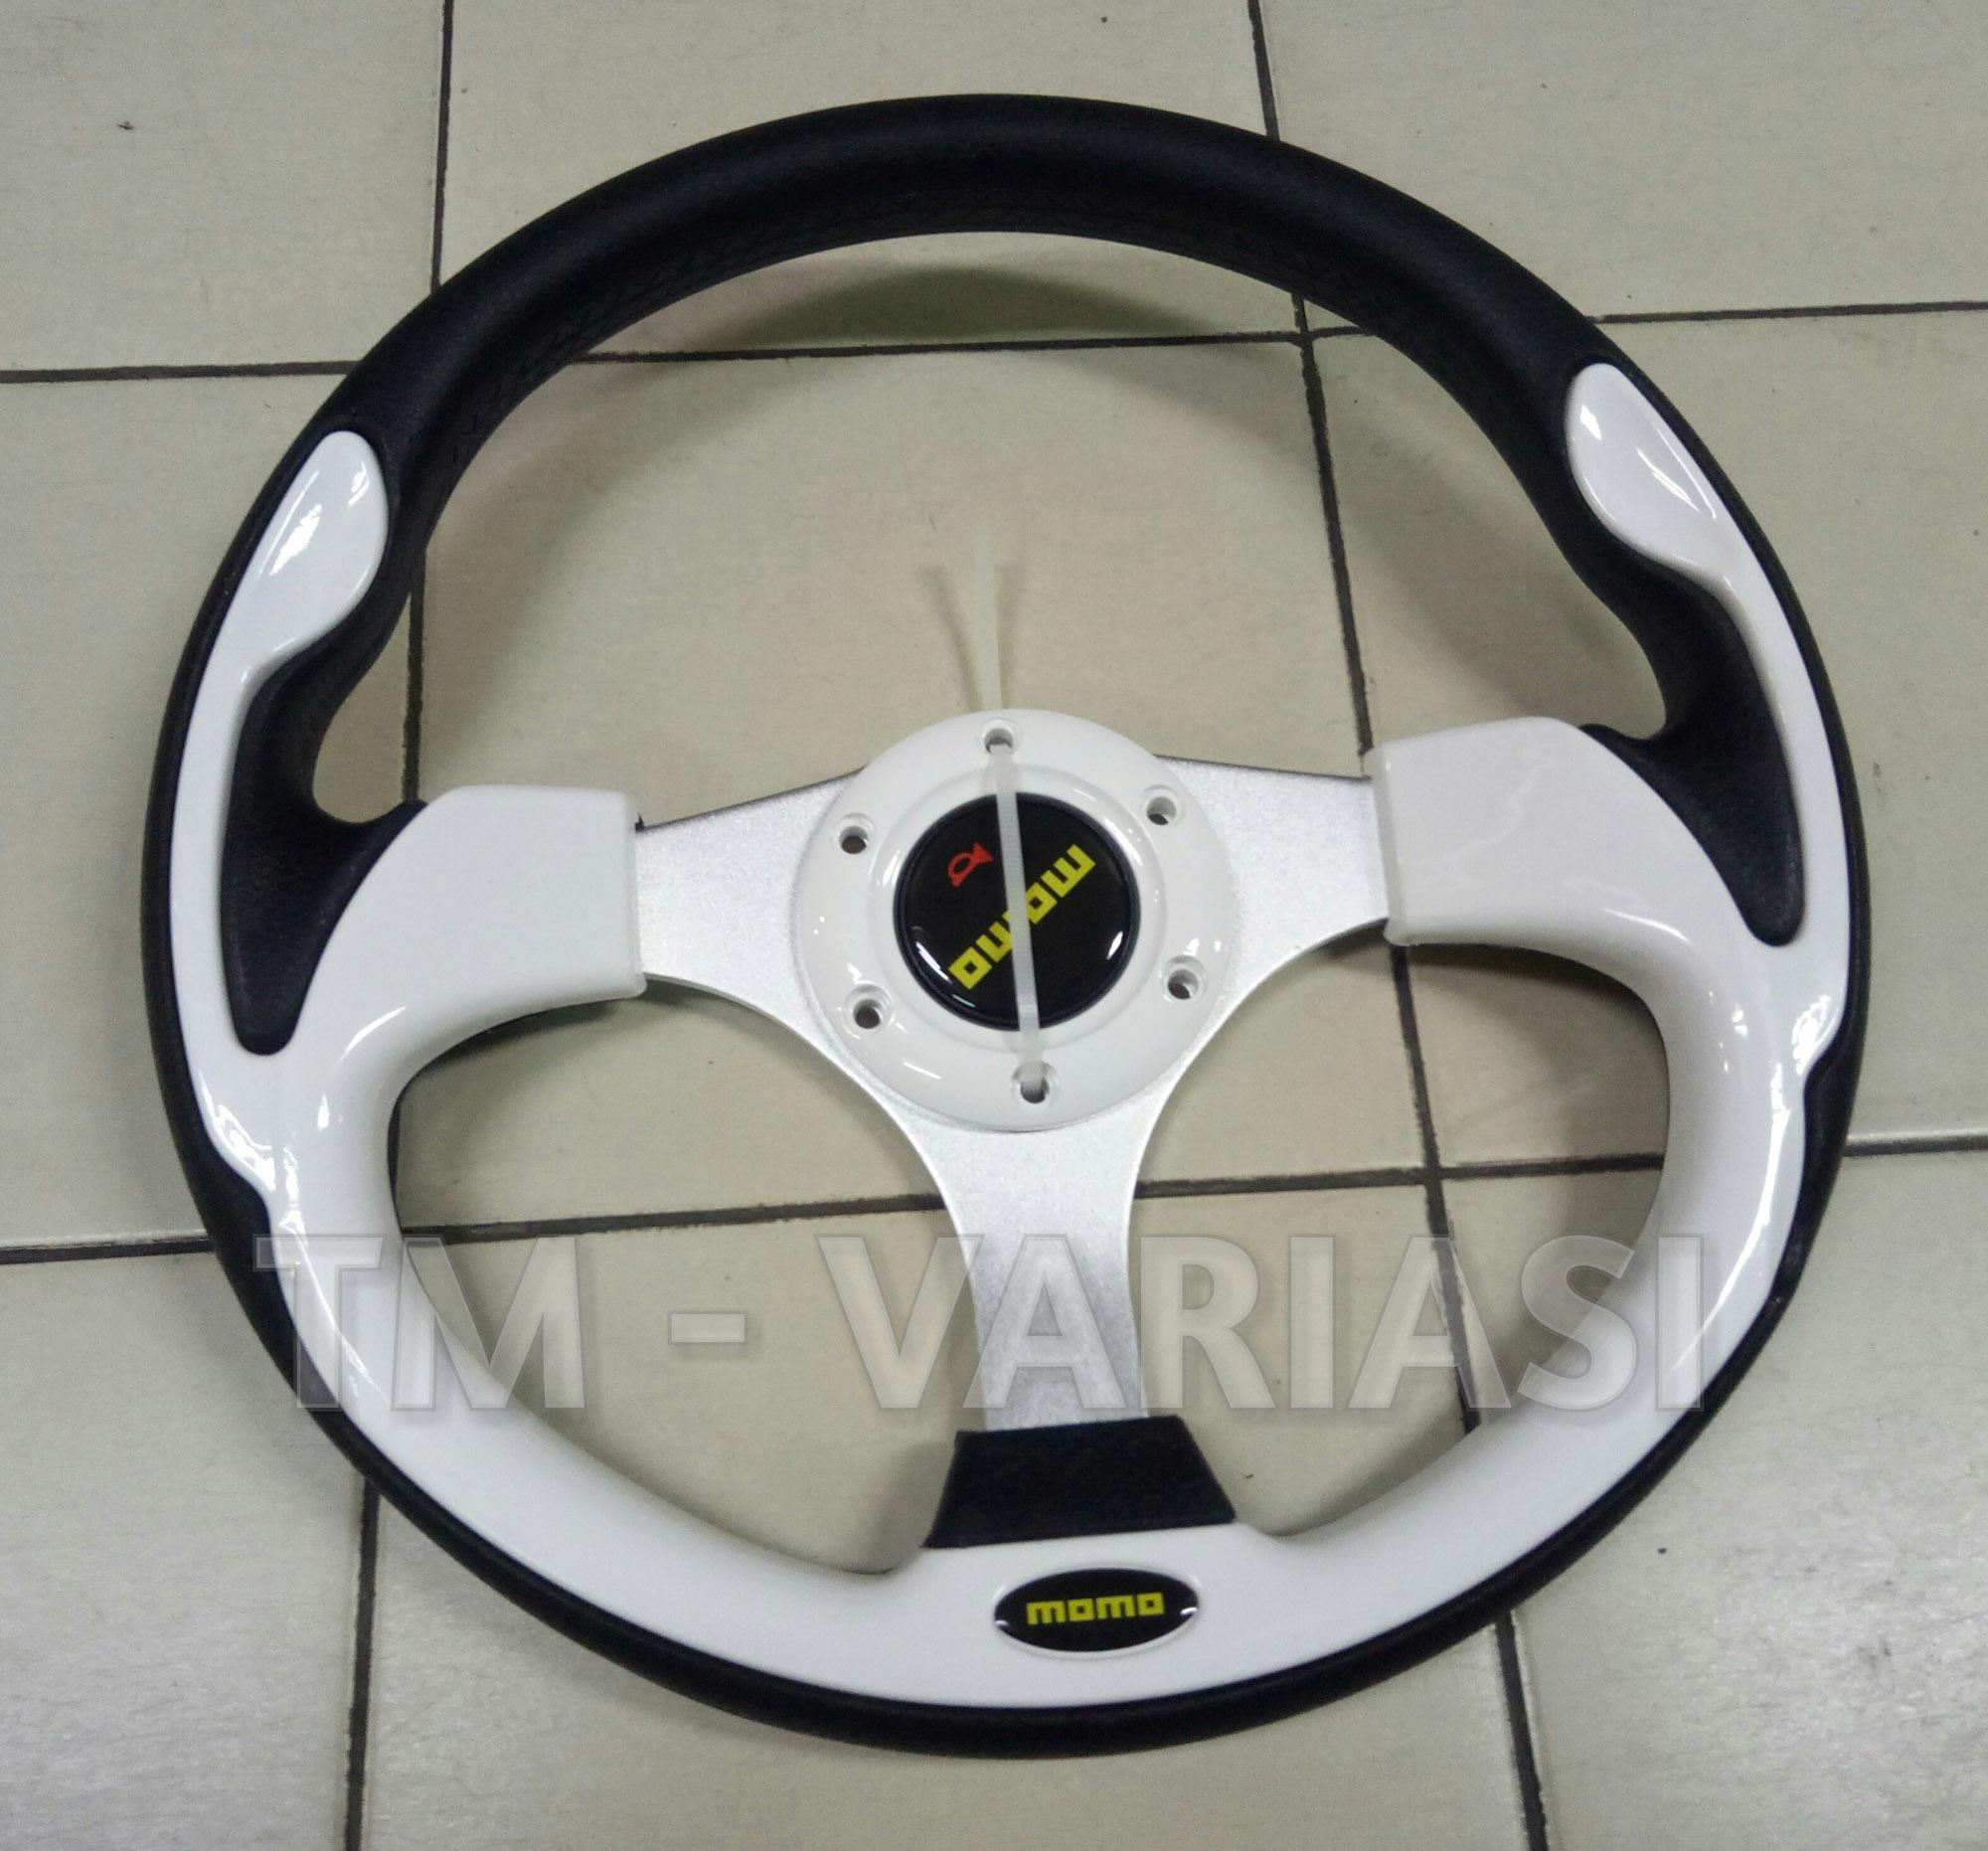 Review Power Handle Pemutar Stir Momo Hitam Logo Putih Universal Dan Racing 14 13 Inchi Import Motif Tinggi